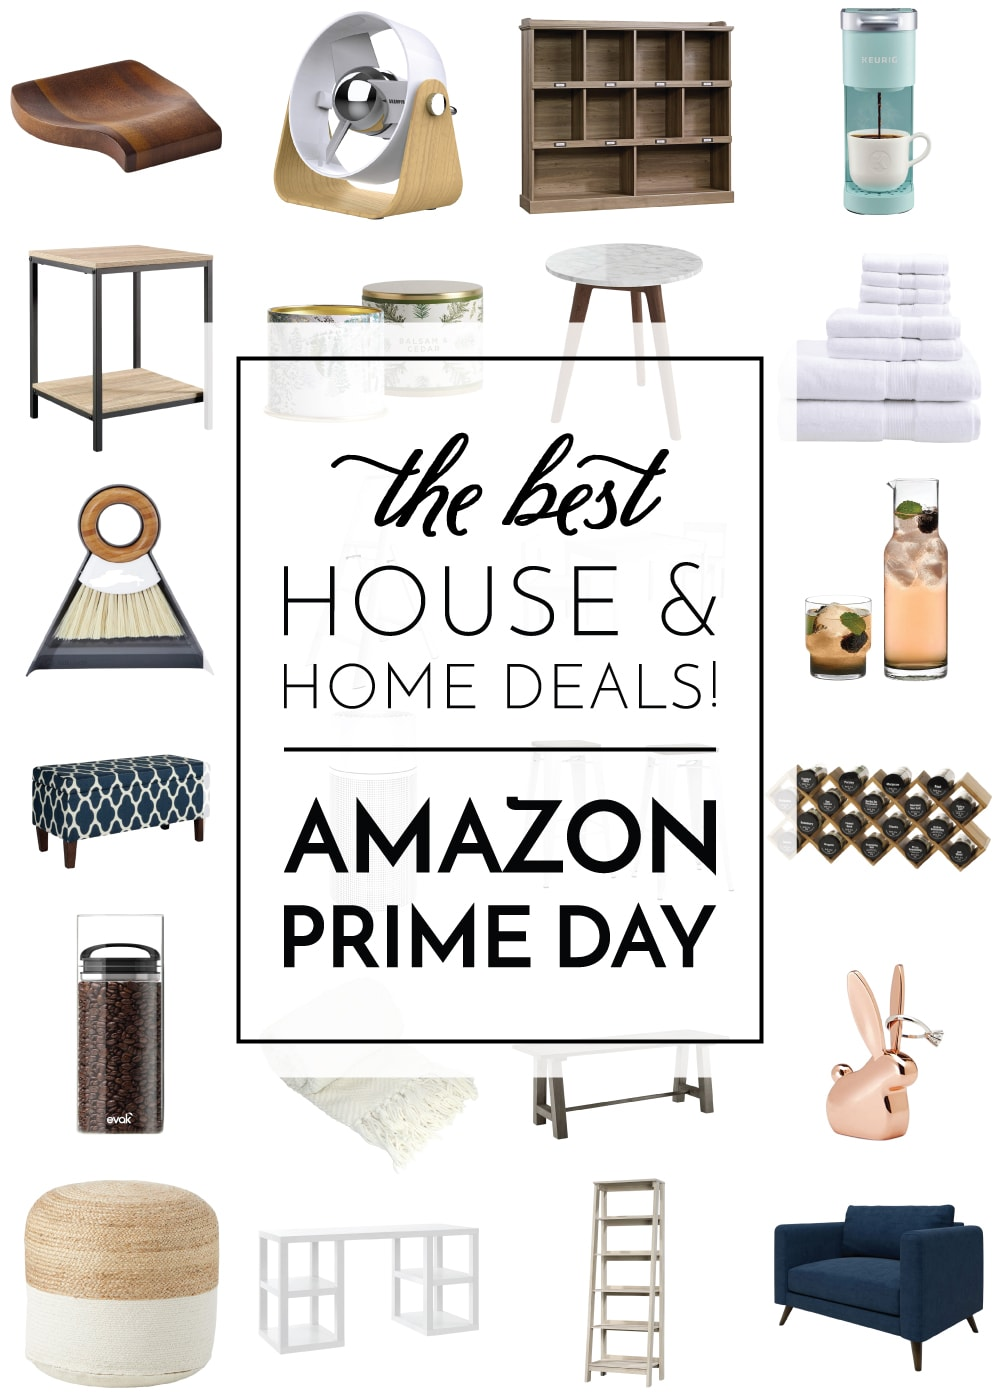 Home Deals on Amazon Prime Day